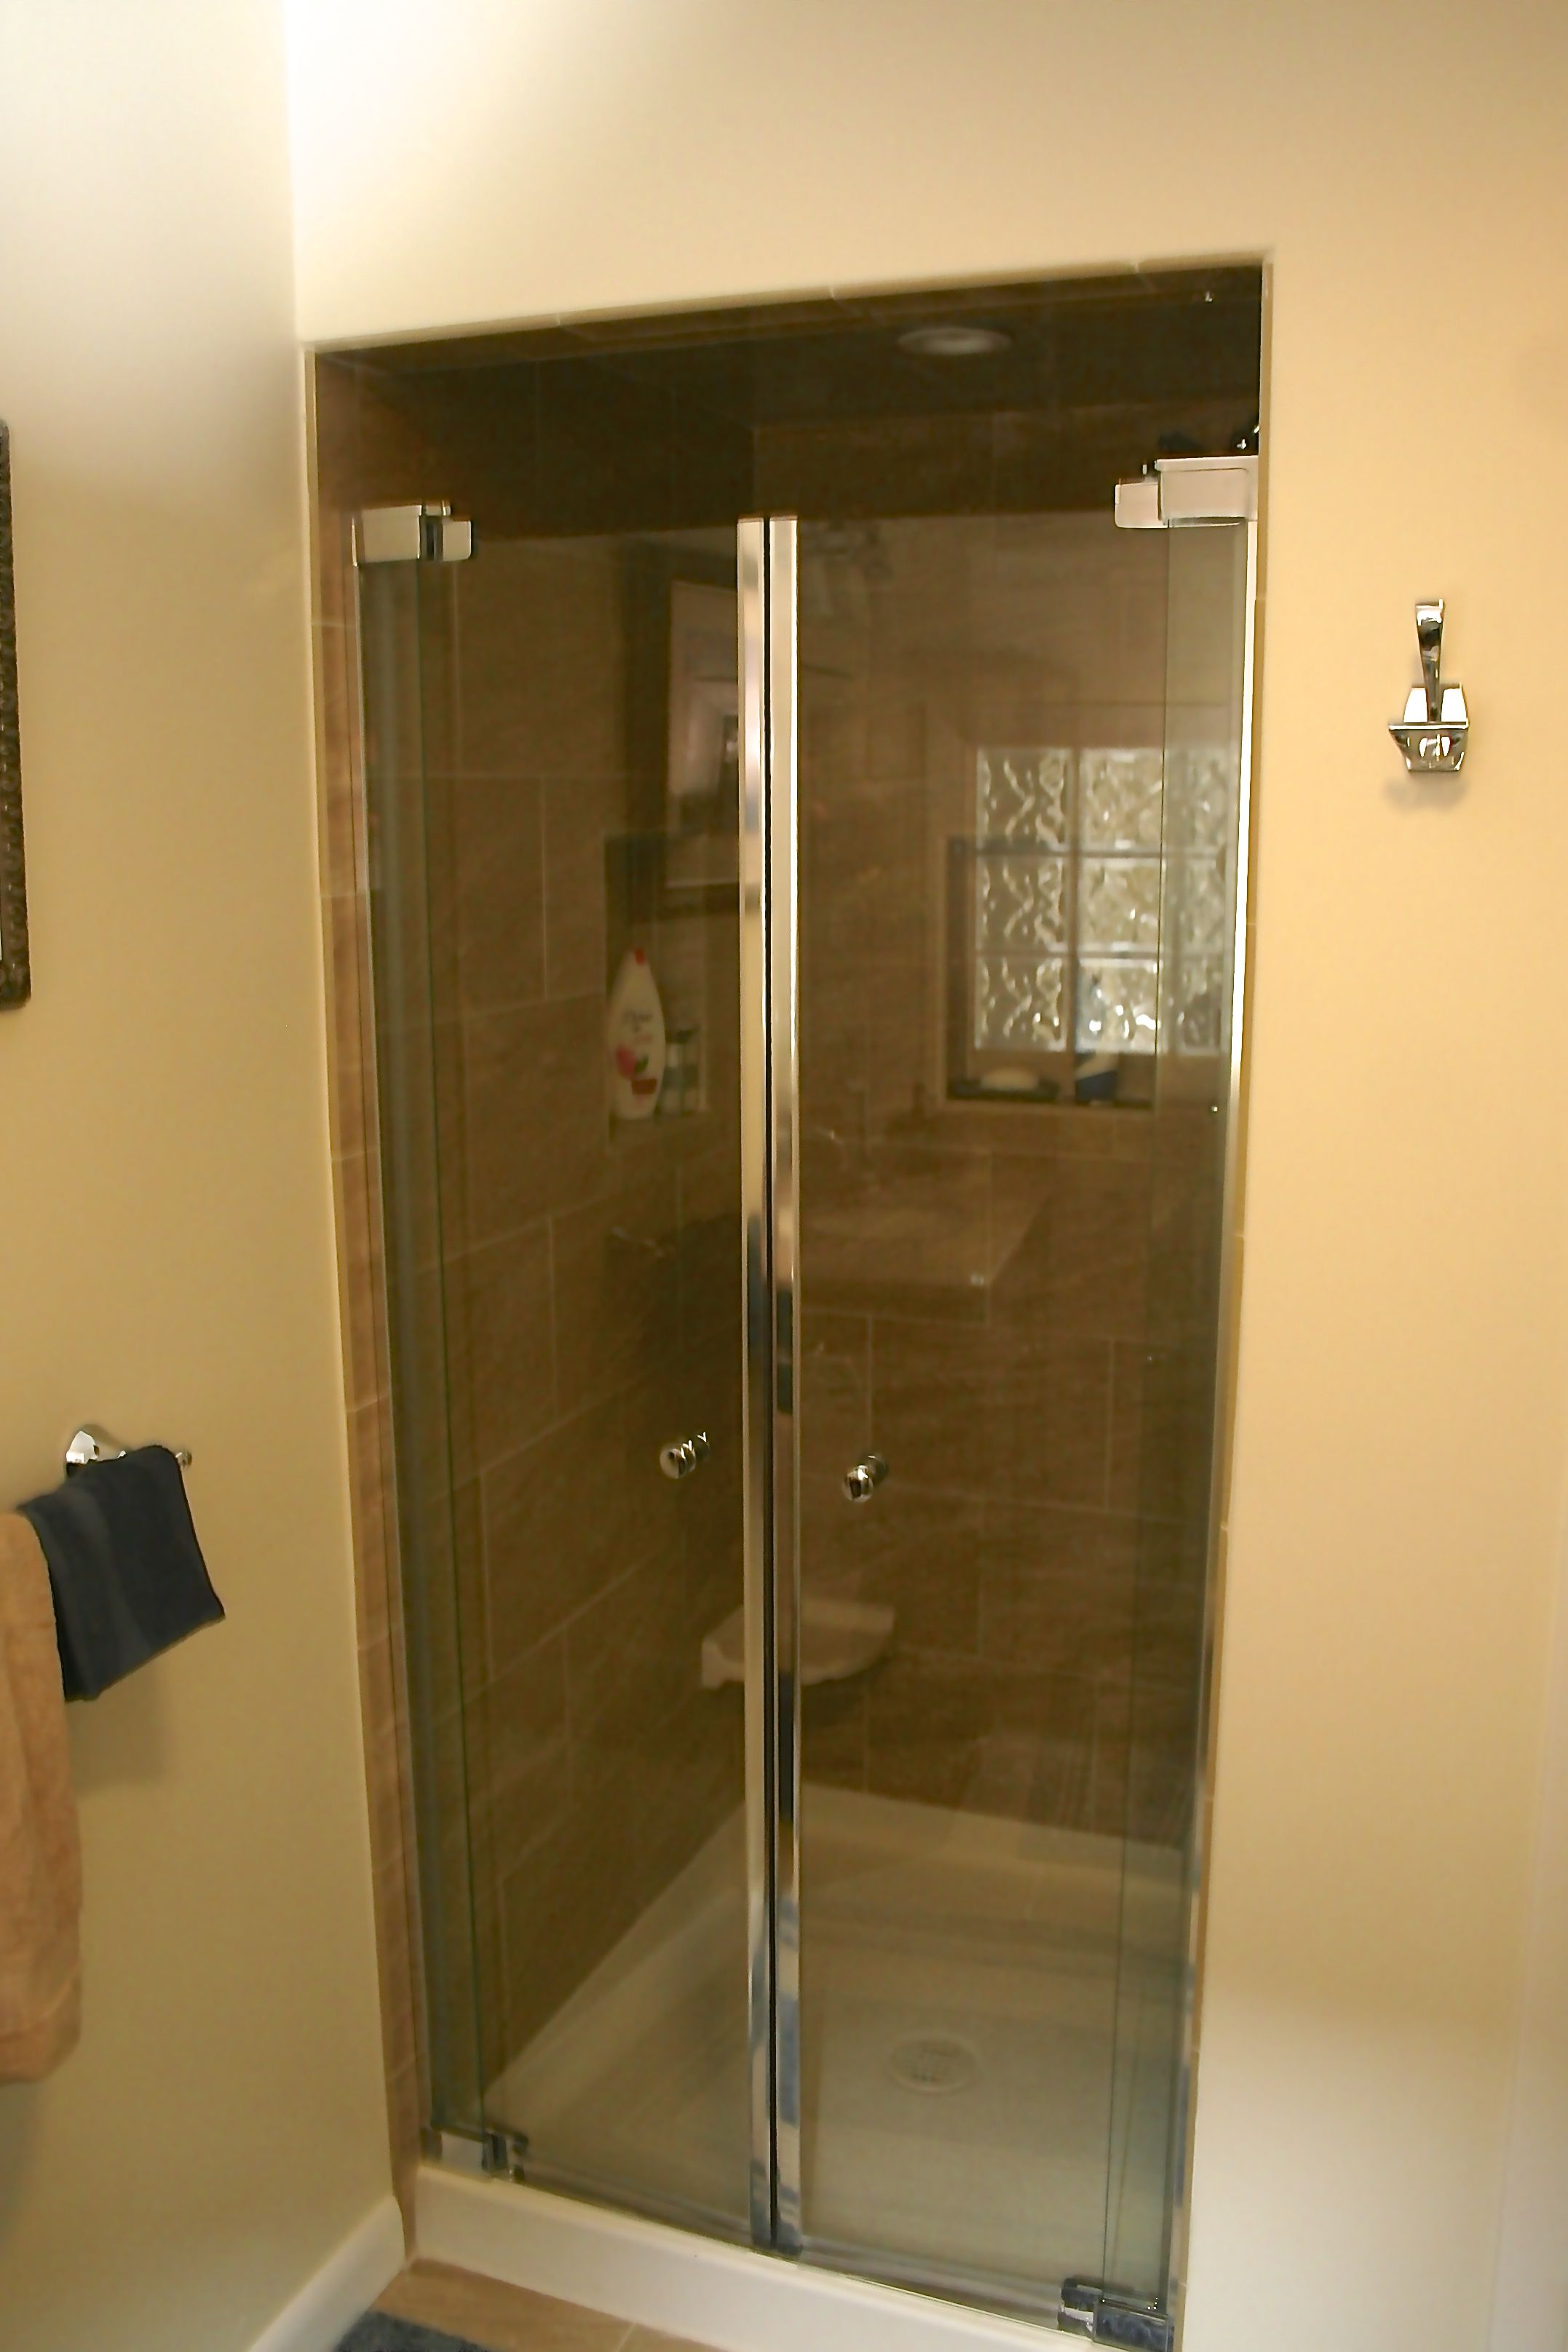 Maax Kleara single panel shower door in chrome, Florentine Porcelain ...